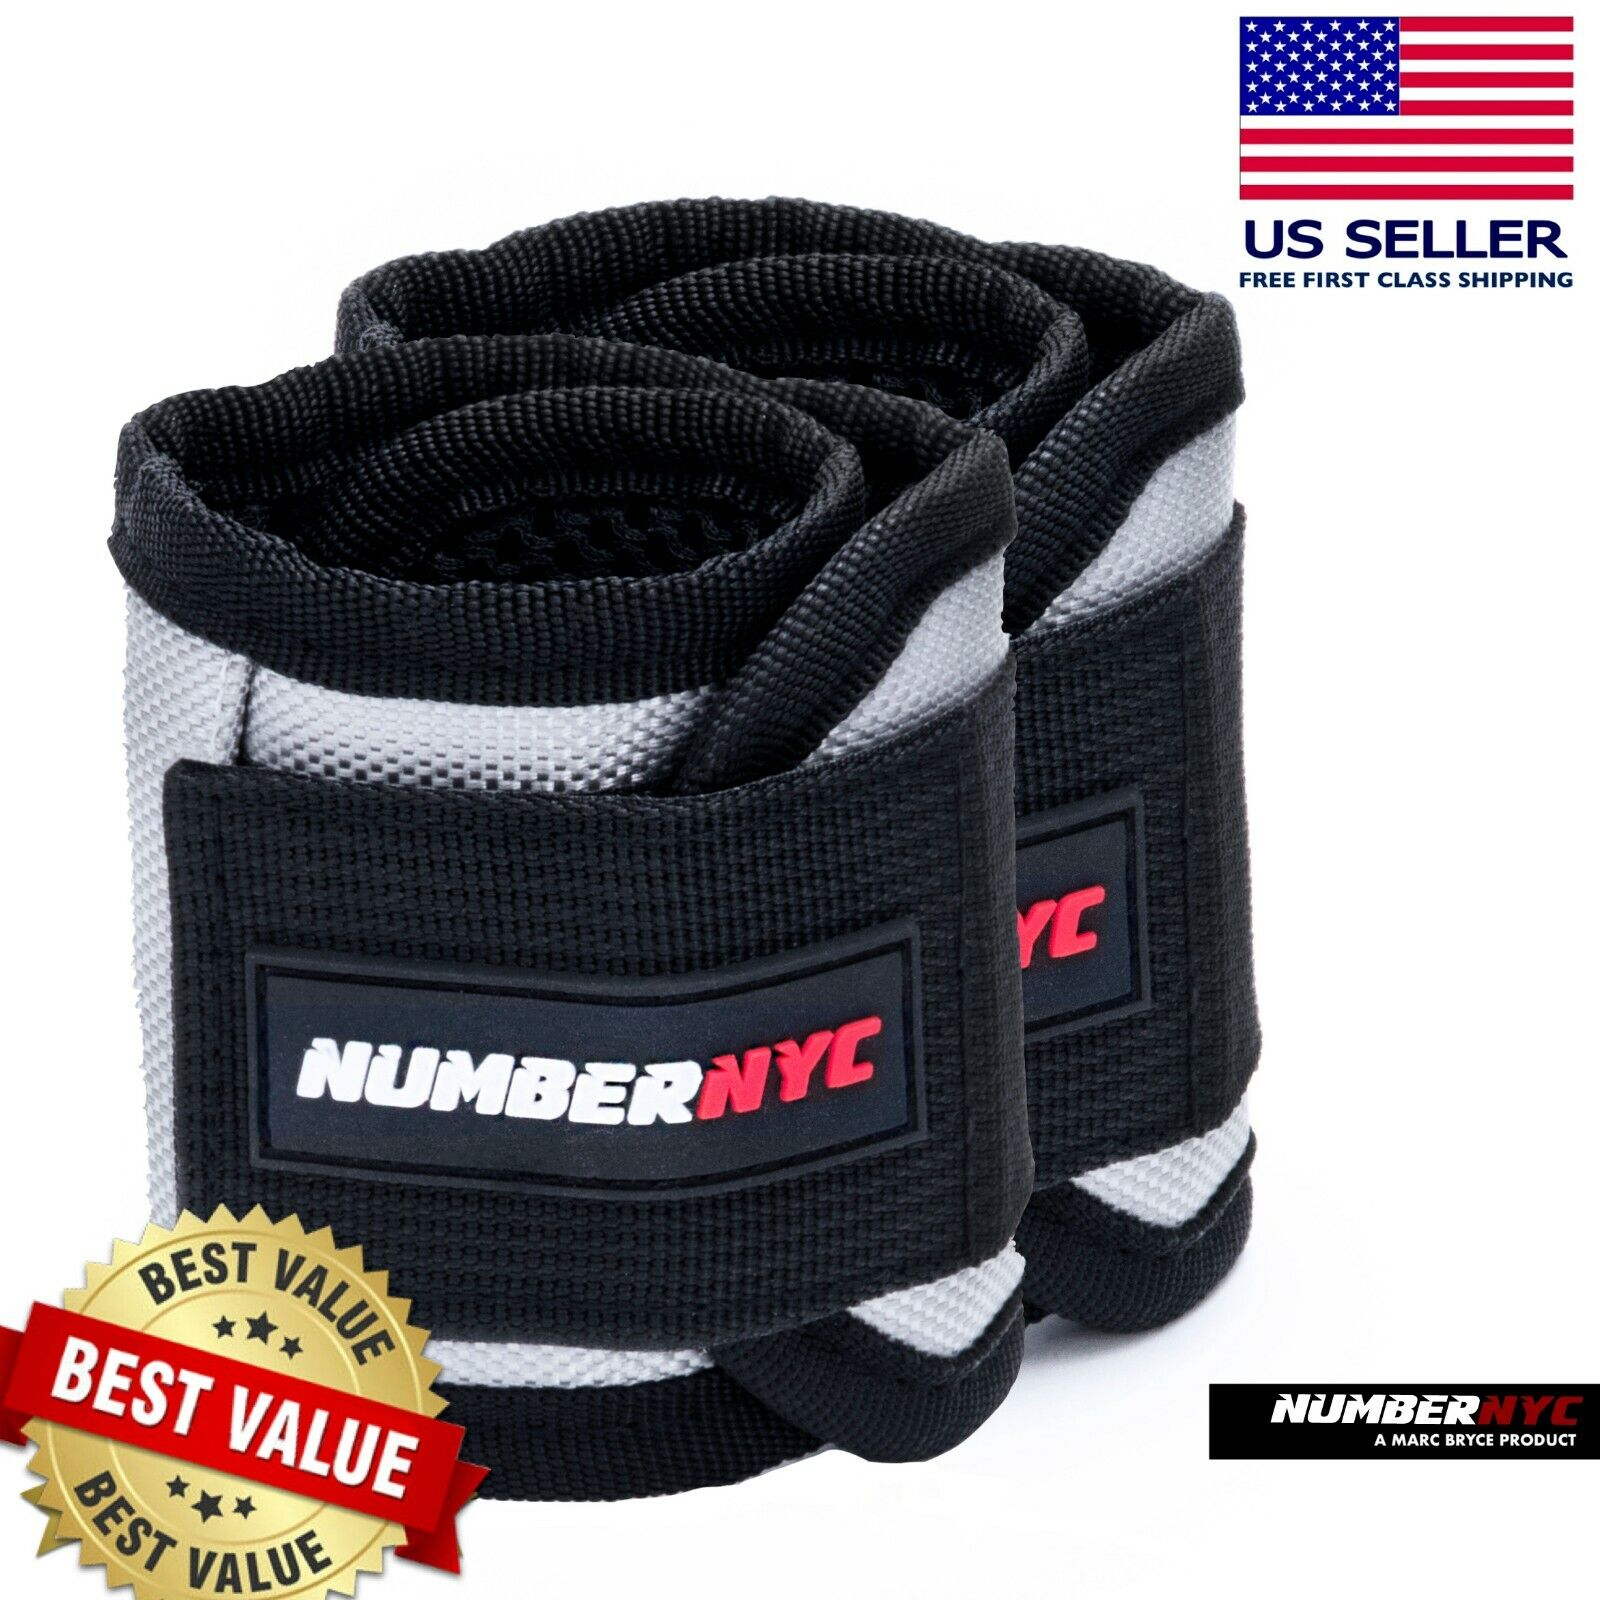 2 Magnetic Wristband Compression Support Strap Relieves Tendinitis Carpal Tunnel